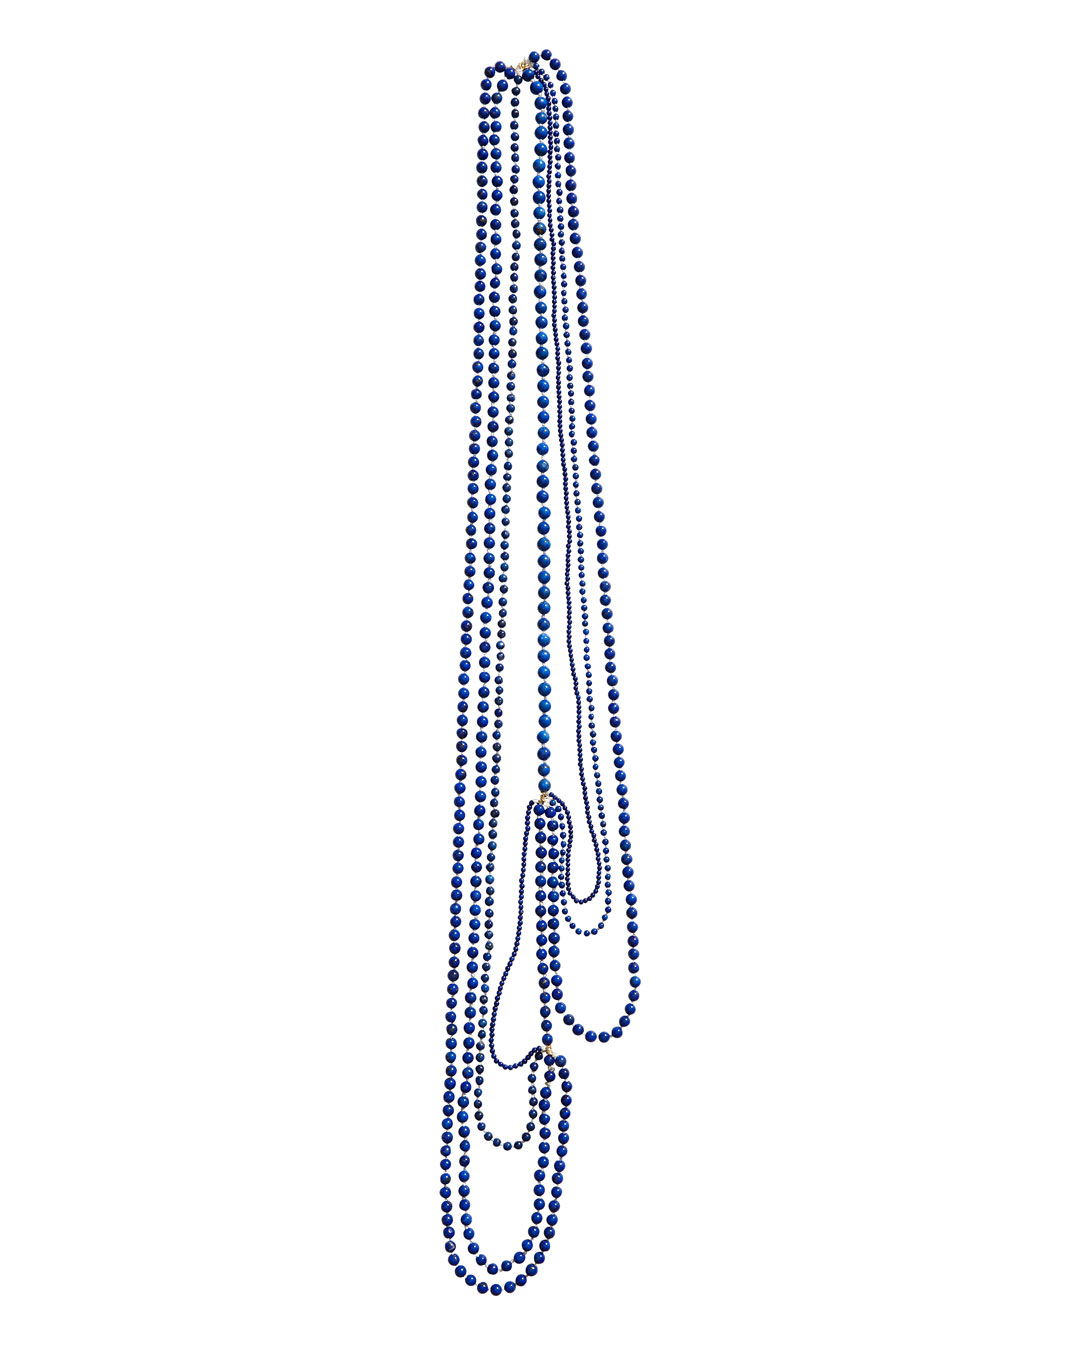 Annelies Planteijdt, Mooie stad - Blauwe water (Beautiful City - Blue Water), 2020, necklace; lapis lazuli, 18ct gold, yarn, 900 mm, sold